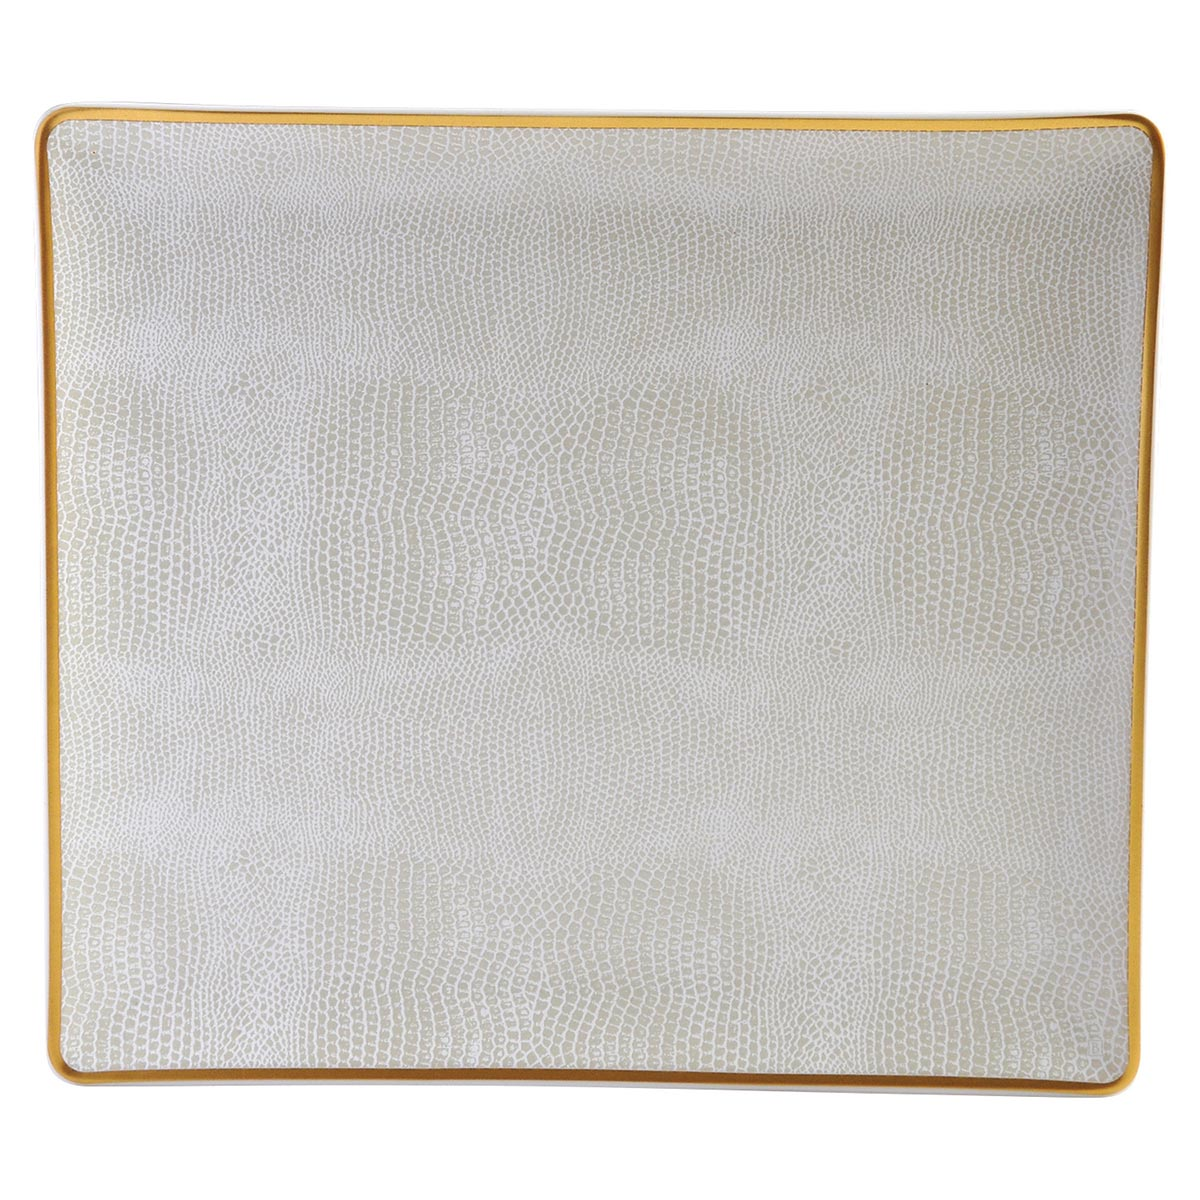 Rectangular tray<br>L: 22cm, l: 19.5cm<br>Sauvage Or